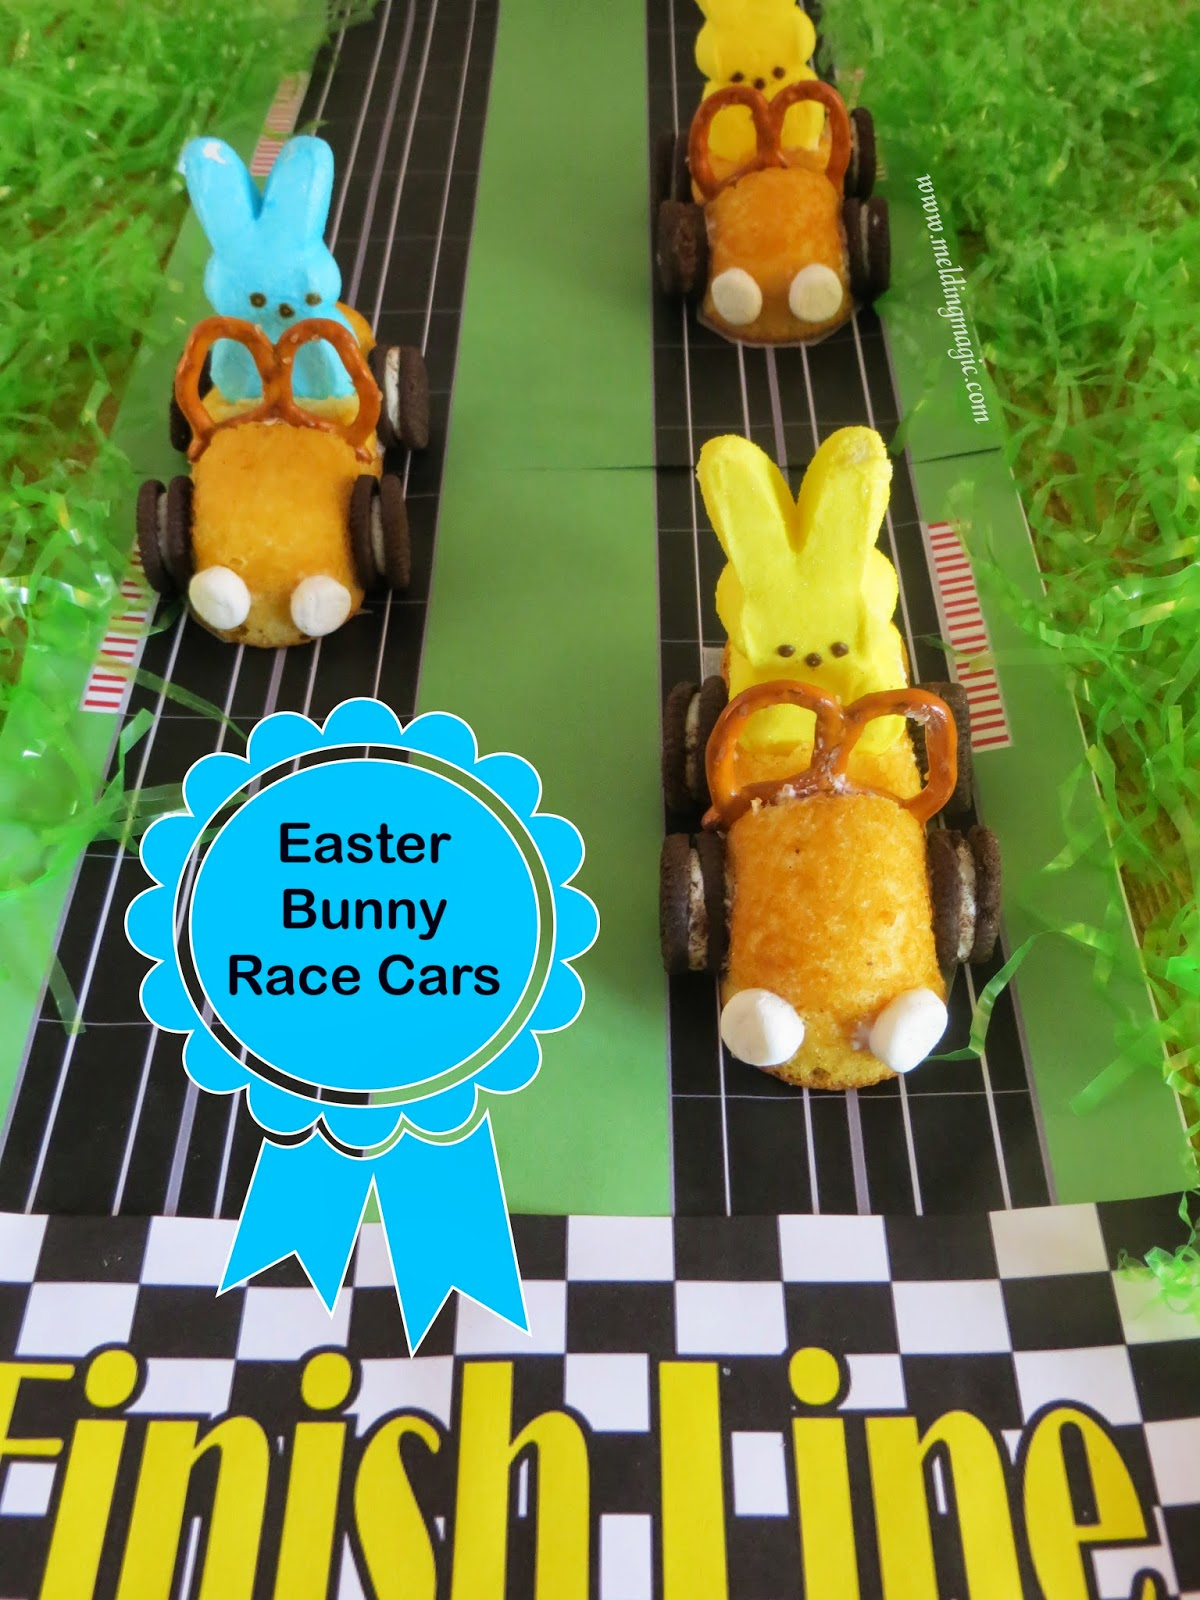 30 of the Best Easter Recipes & DIY Ideas - Roxy's Kitchen - Easter Bunny Race Cars